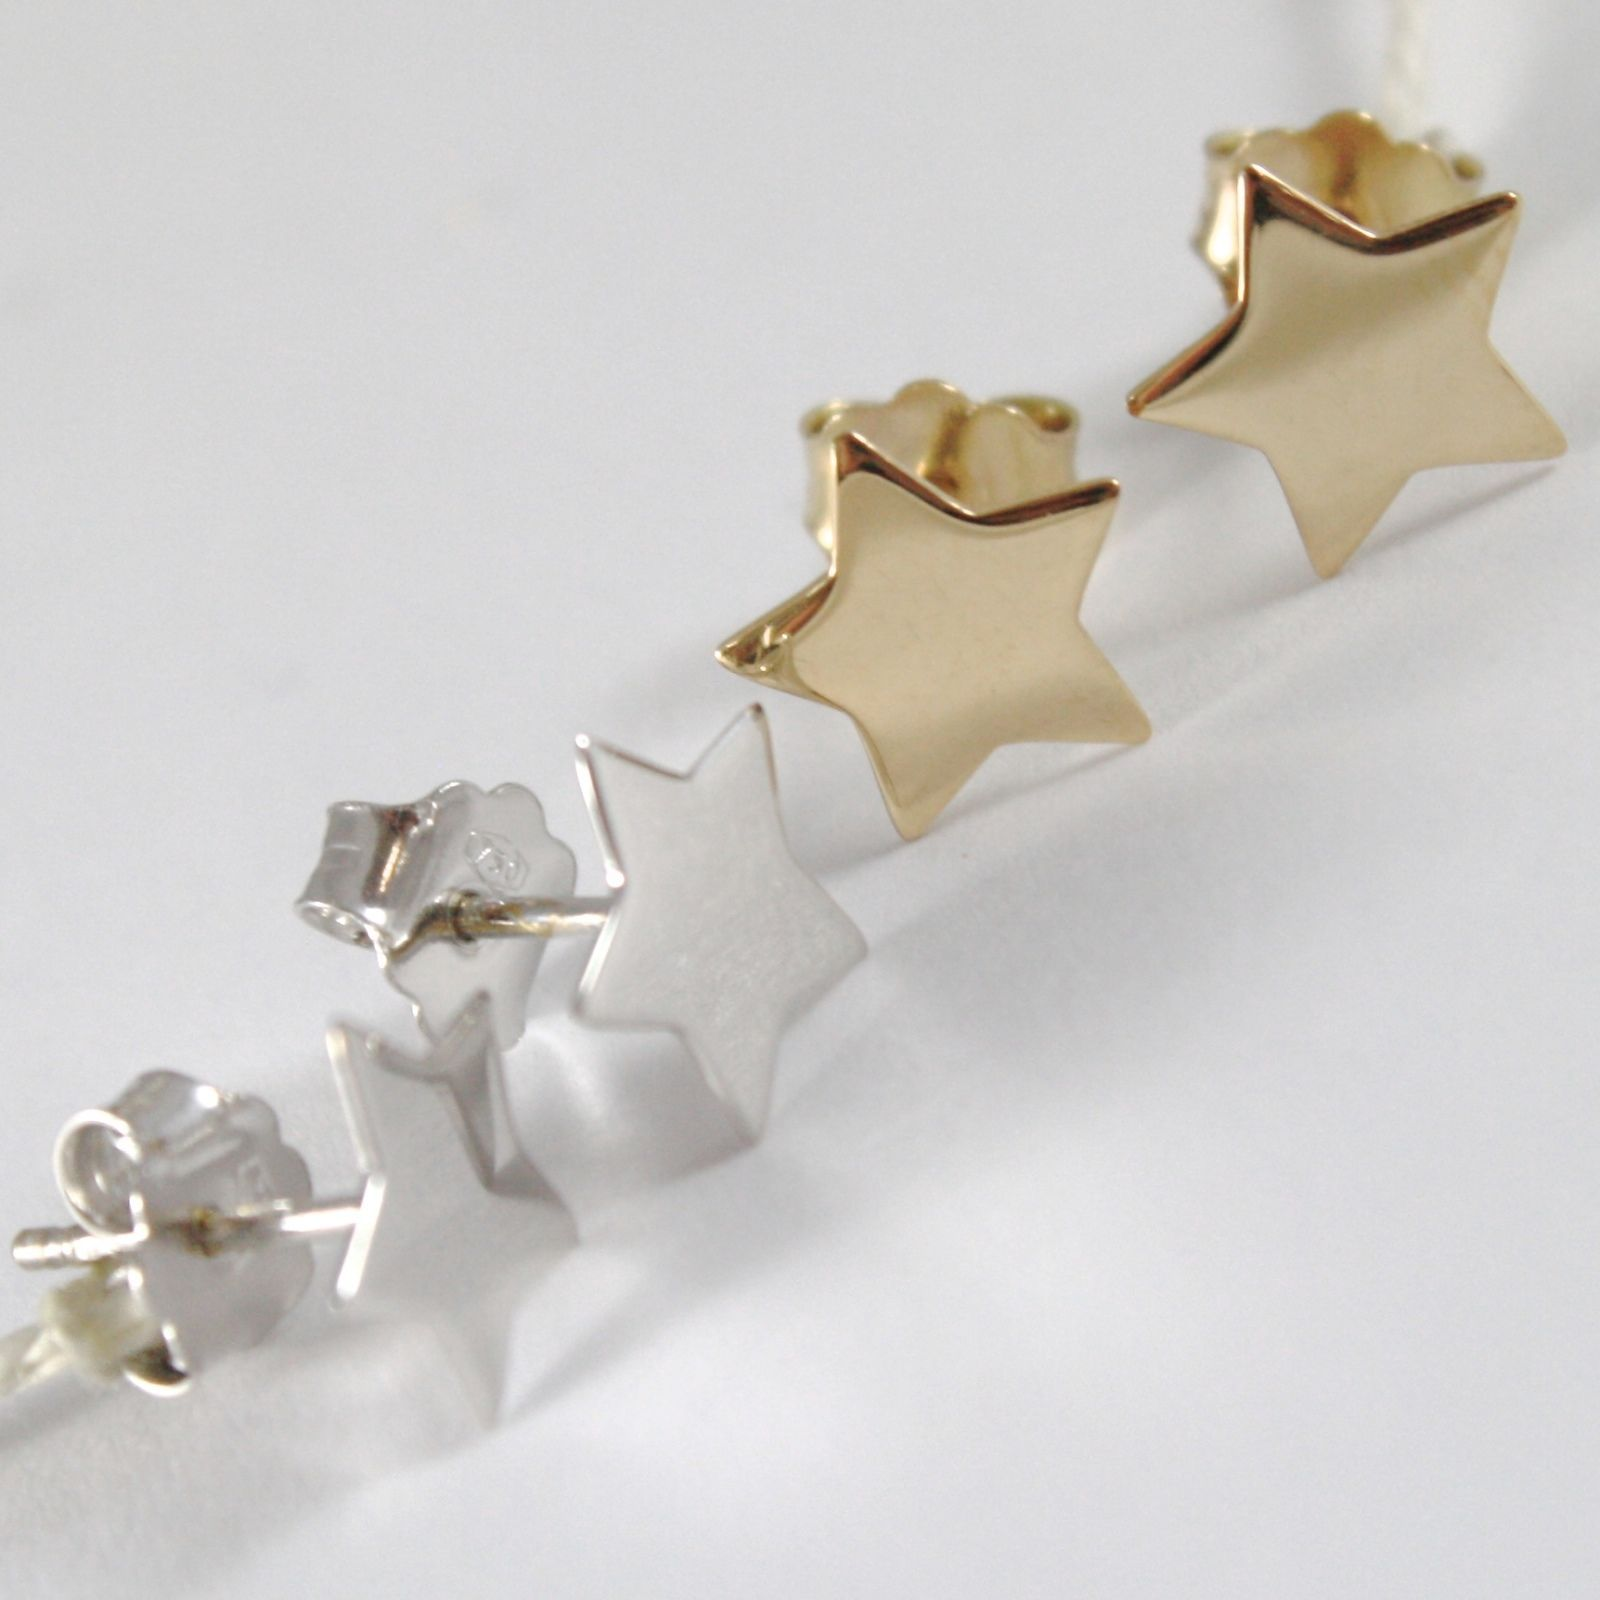 YELLOW GOLD EARRINGS 0,5 WHITE 750 18K, STELLA, STARS FLAT, LENGTH 0.9 CM